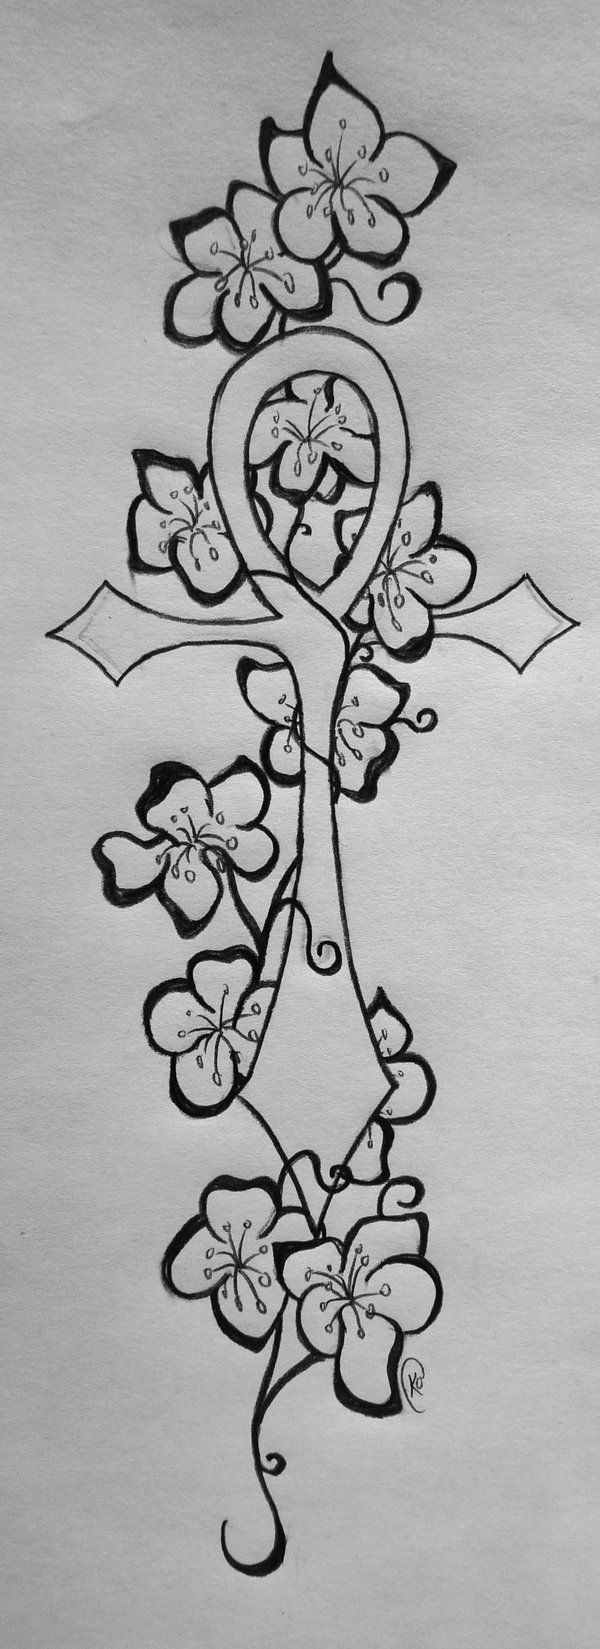 Ankh Cherry tattoo Two by Shinobi-For-Life.deviantart.com on @deviantART